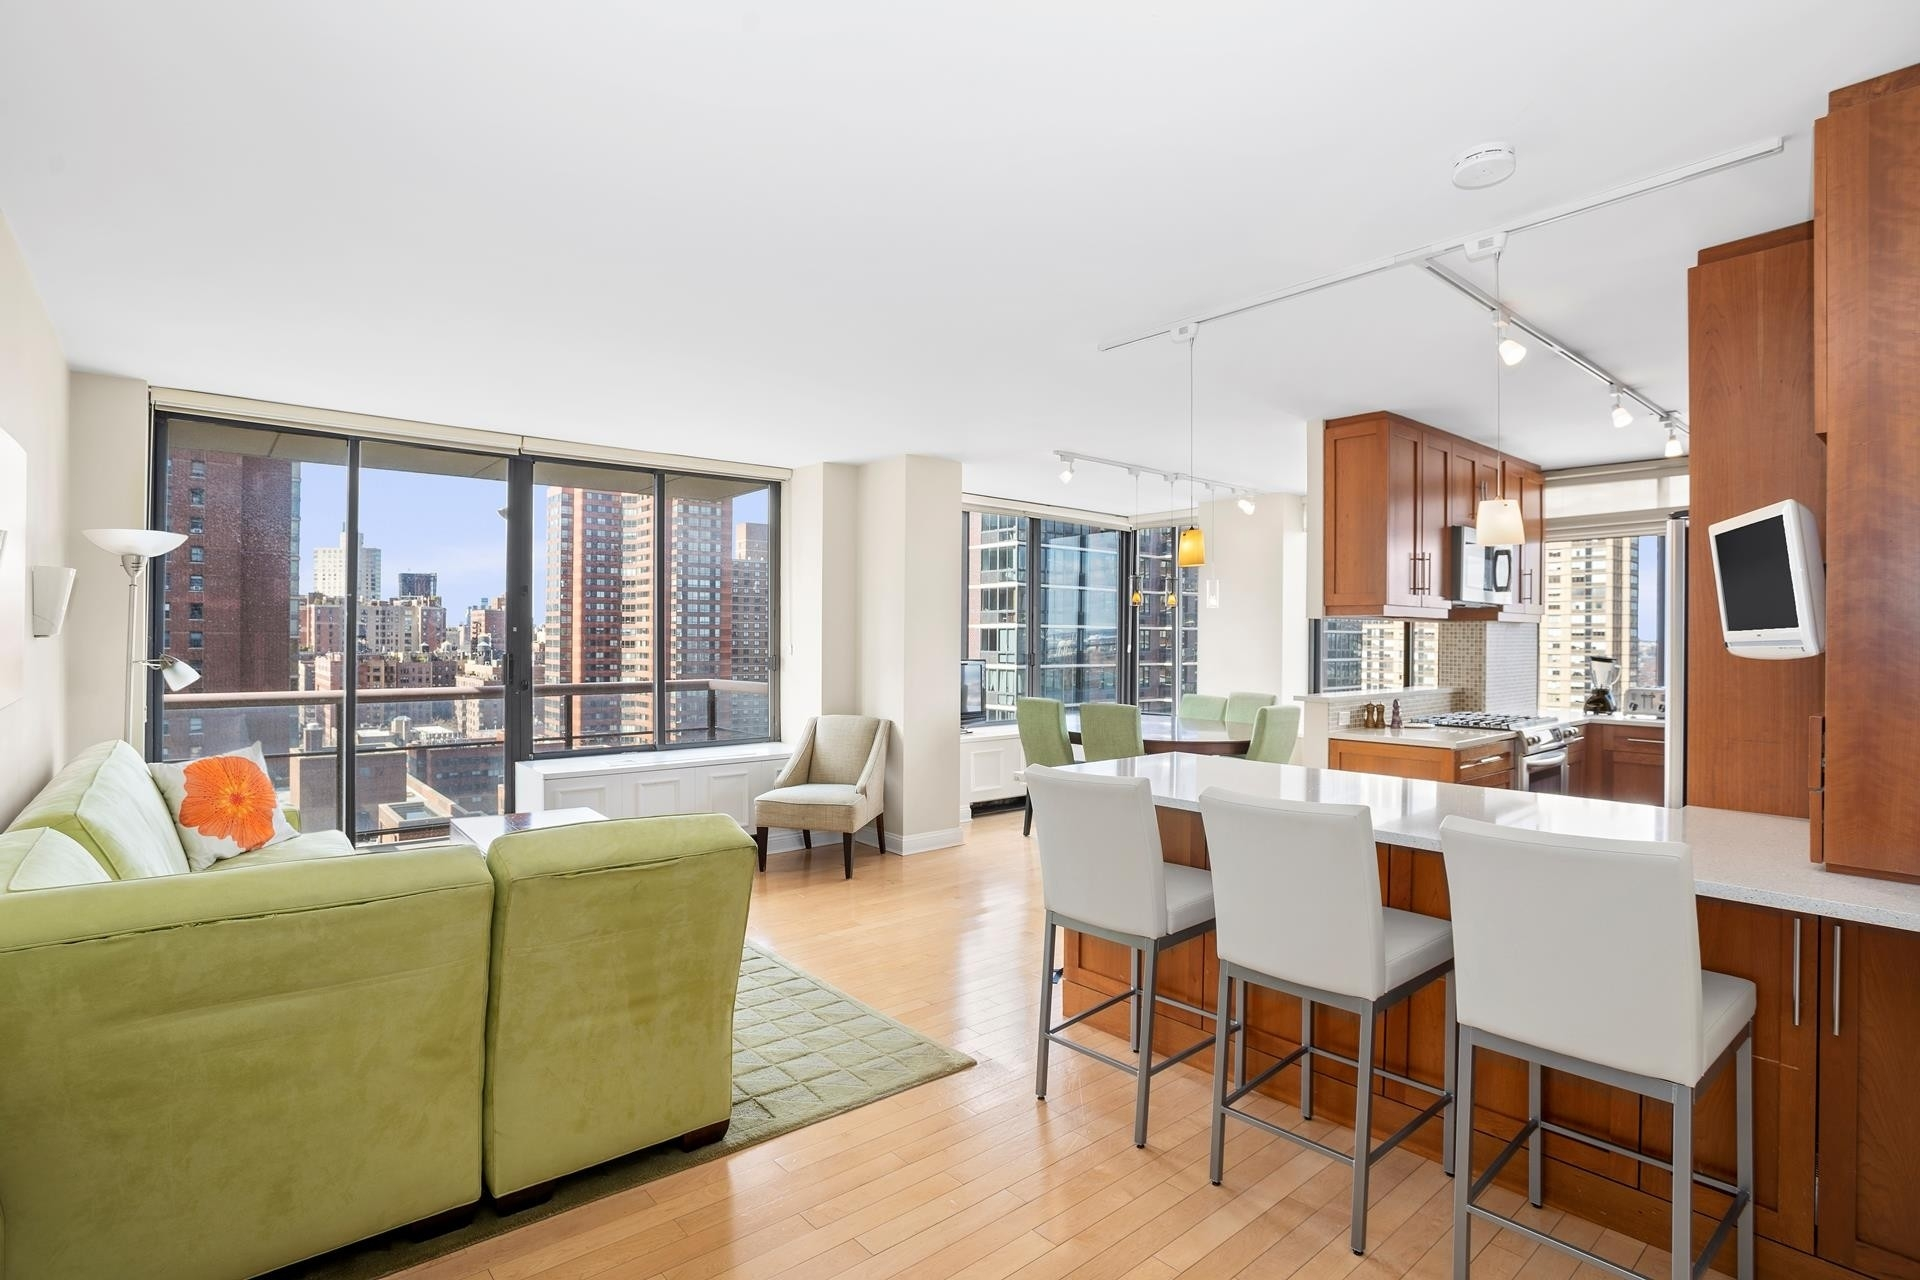 Property at 300 East 93rd St, 25ABC Yorkville, New York, NY 10128